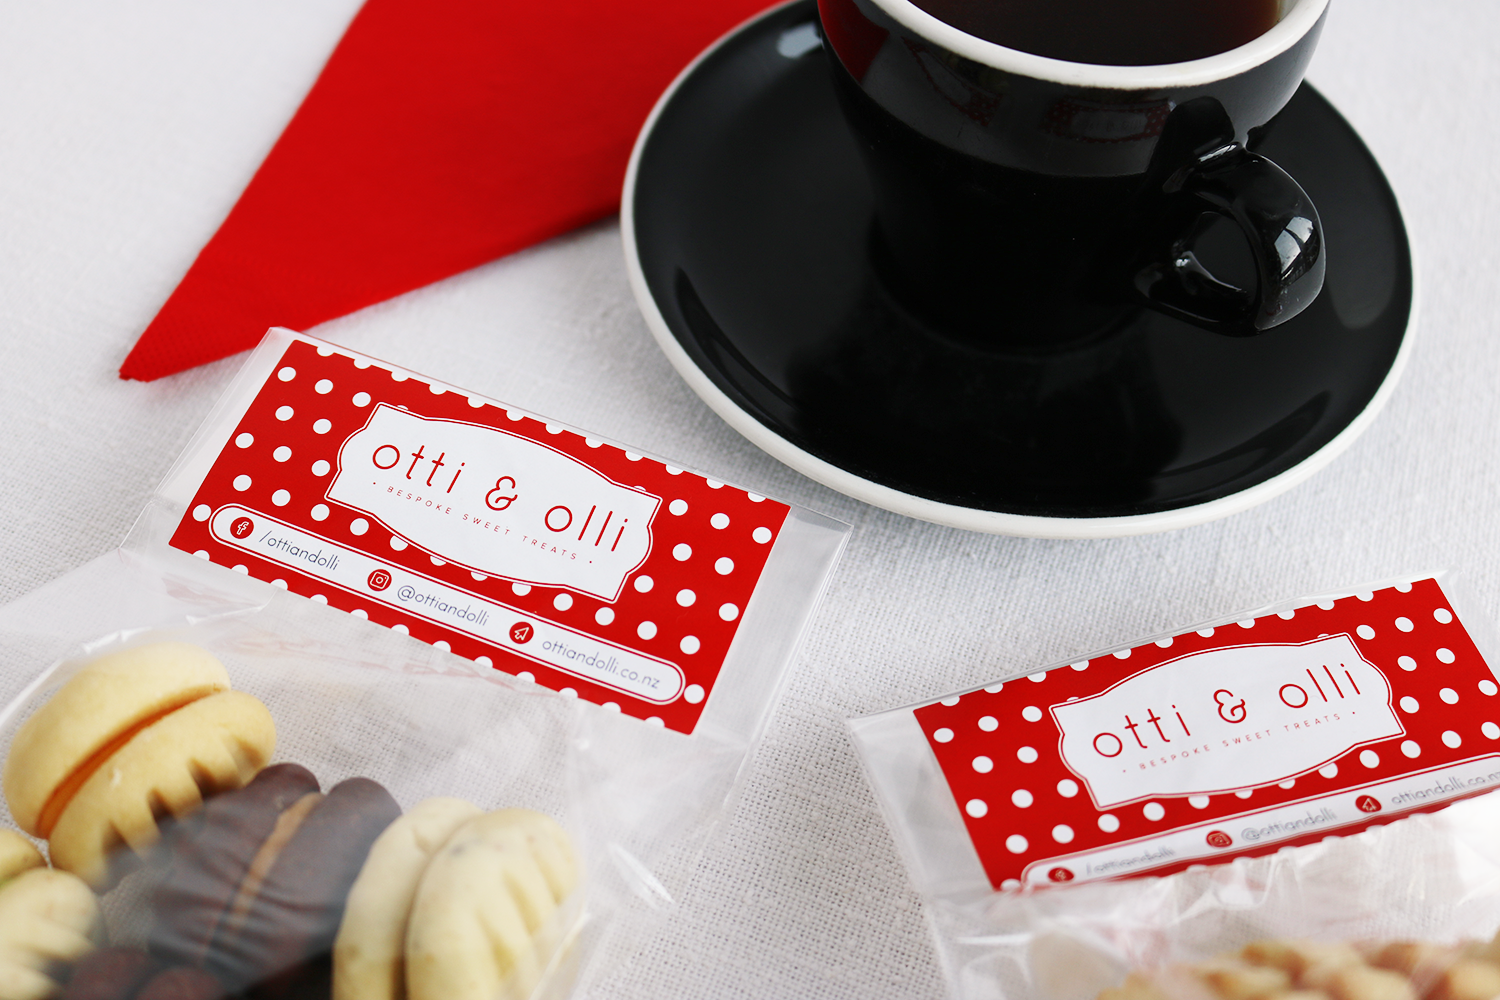 Otti & Olli Packaging Label Design